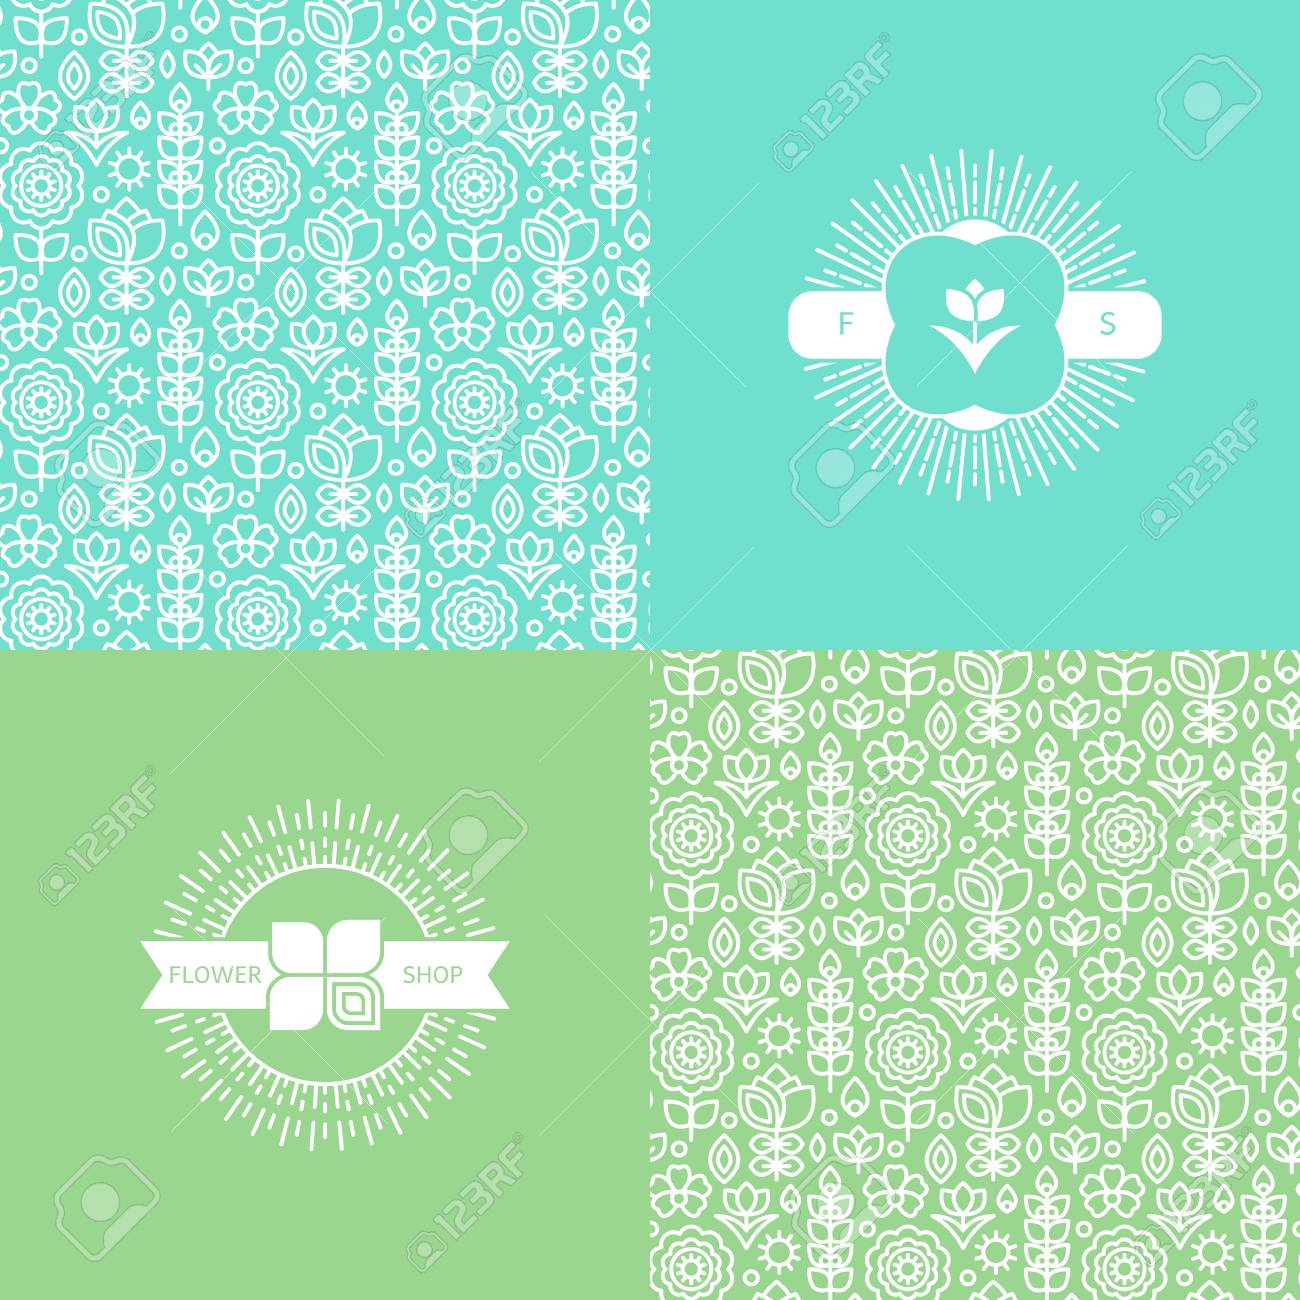 Set with pretty flower patterns and backgrounds royalty free set with pretty flower patterns and backgrounds stock vector 53262524 mightylinksfo